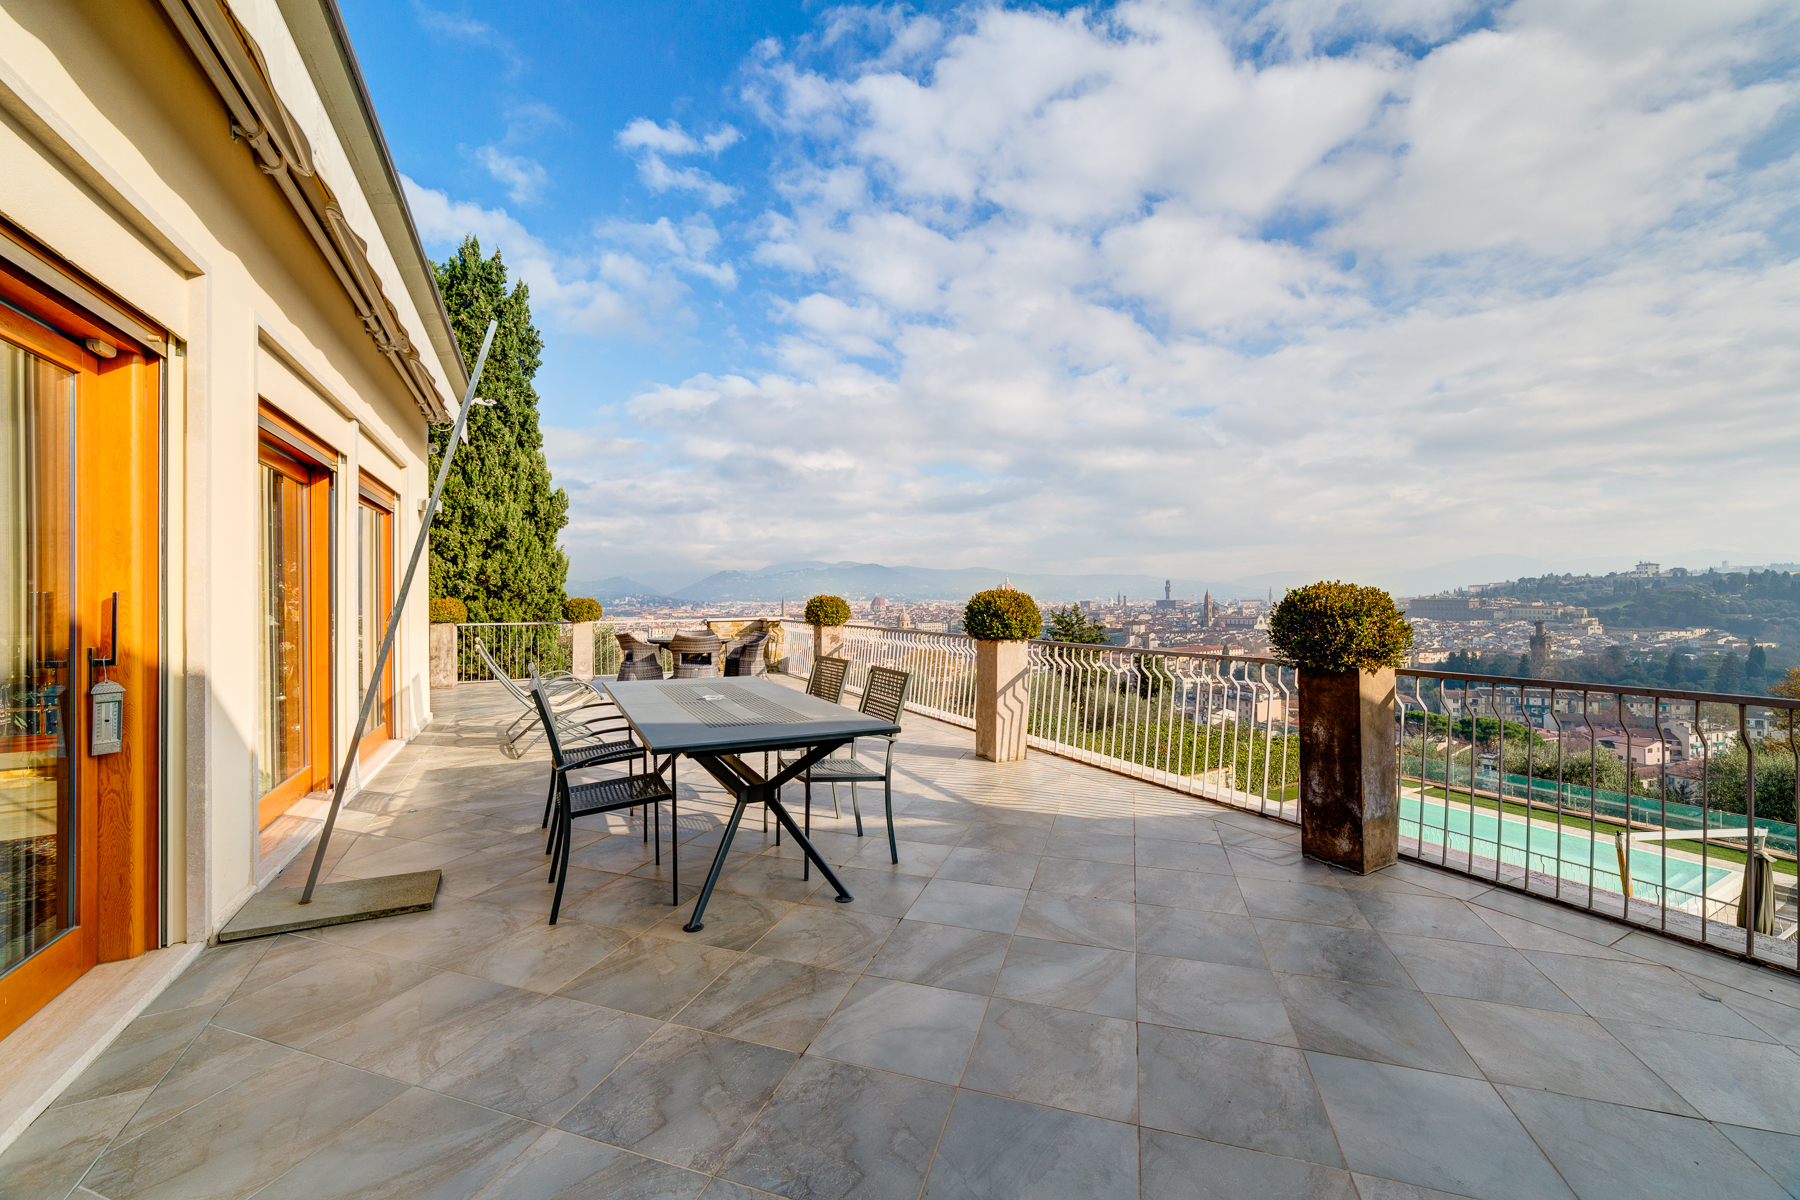 Additional photo for property listing at A truly unique villa with views over Florence Bellosguardo Firenze, Florence 50122 Italy